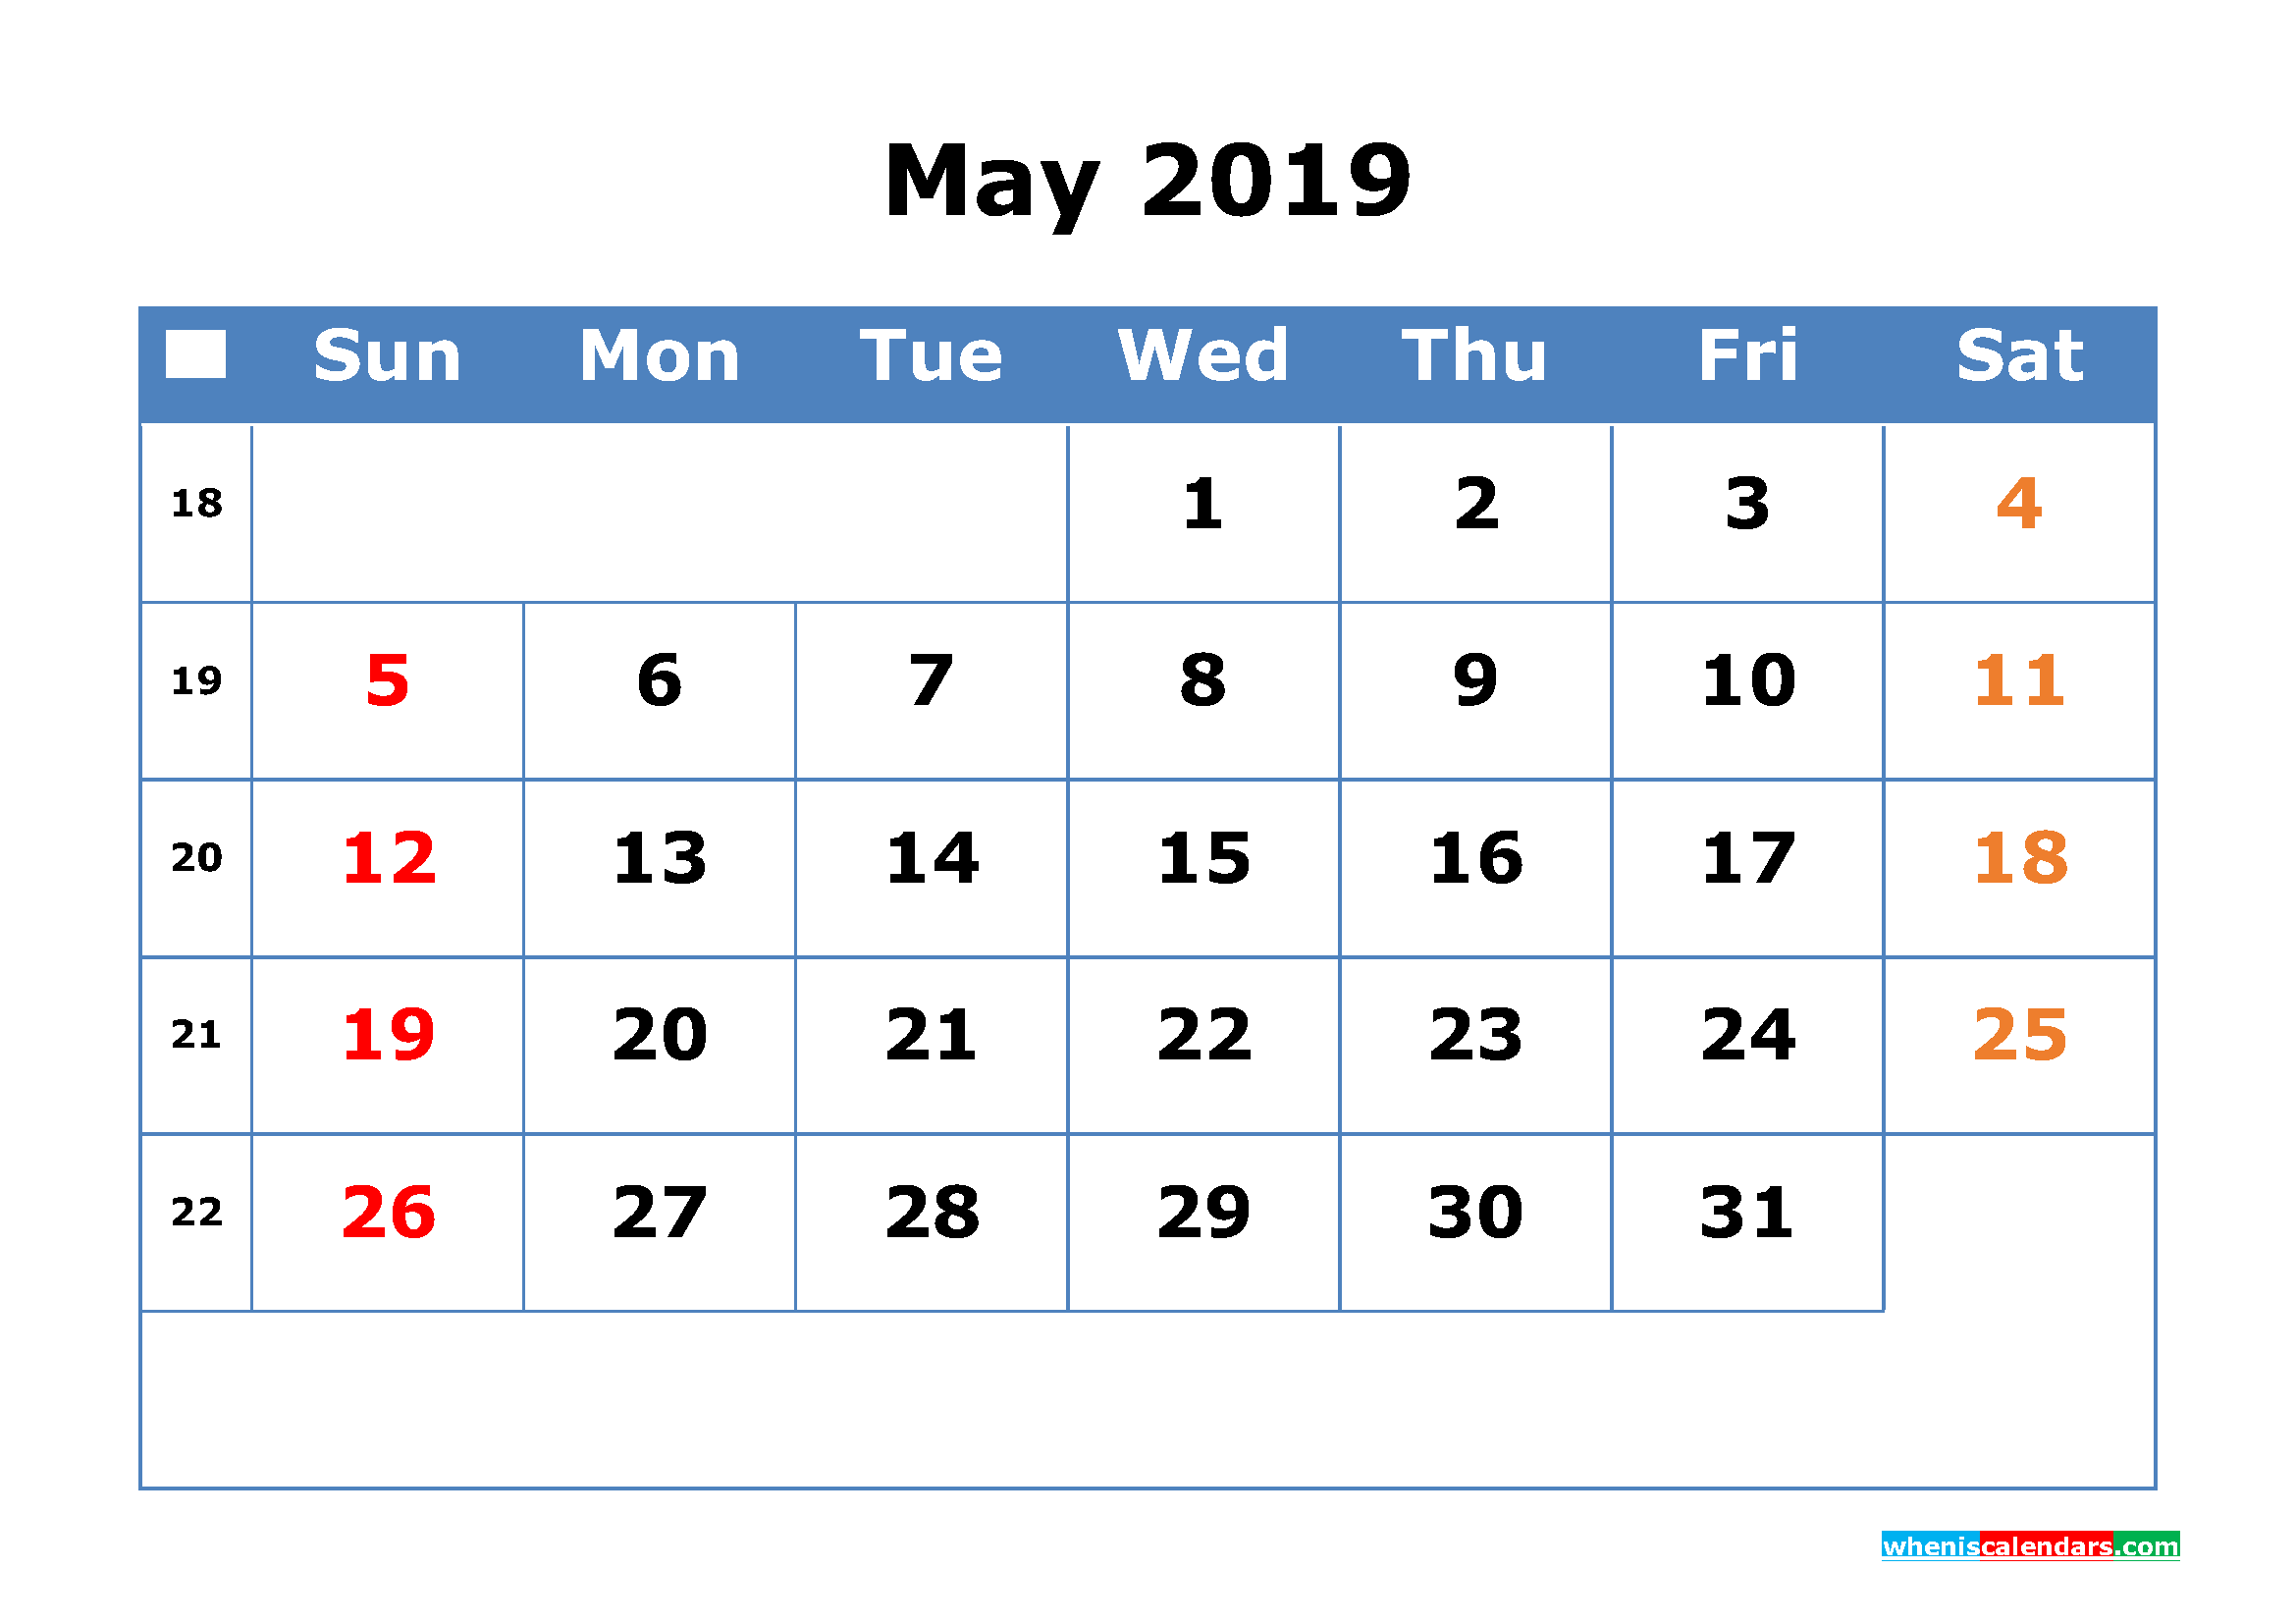 printable calendar 2019 may with week number